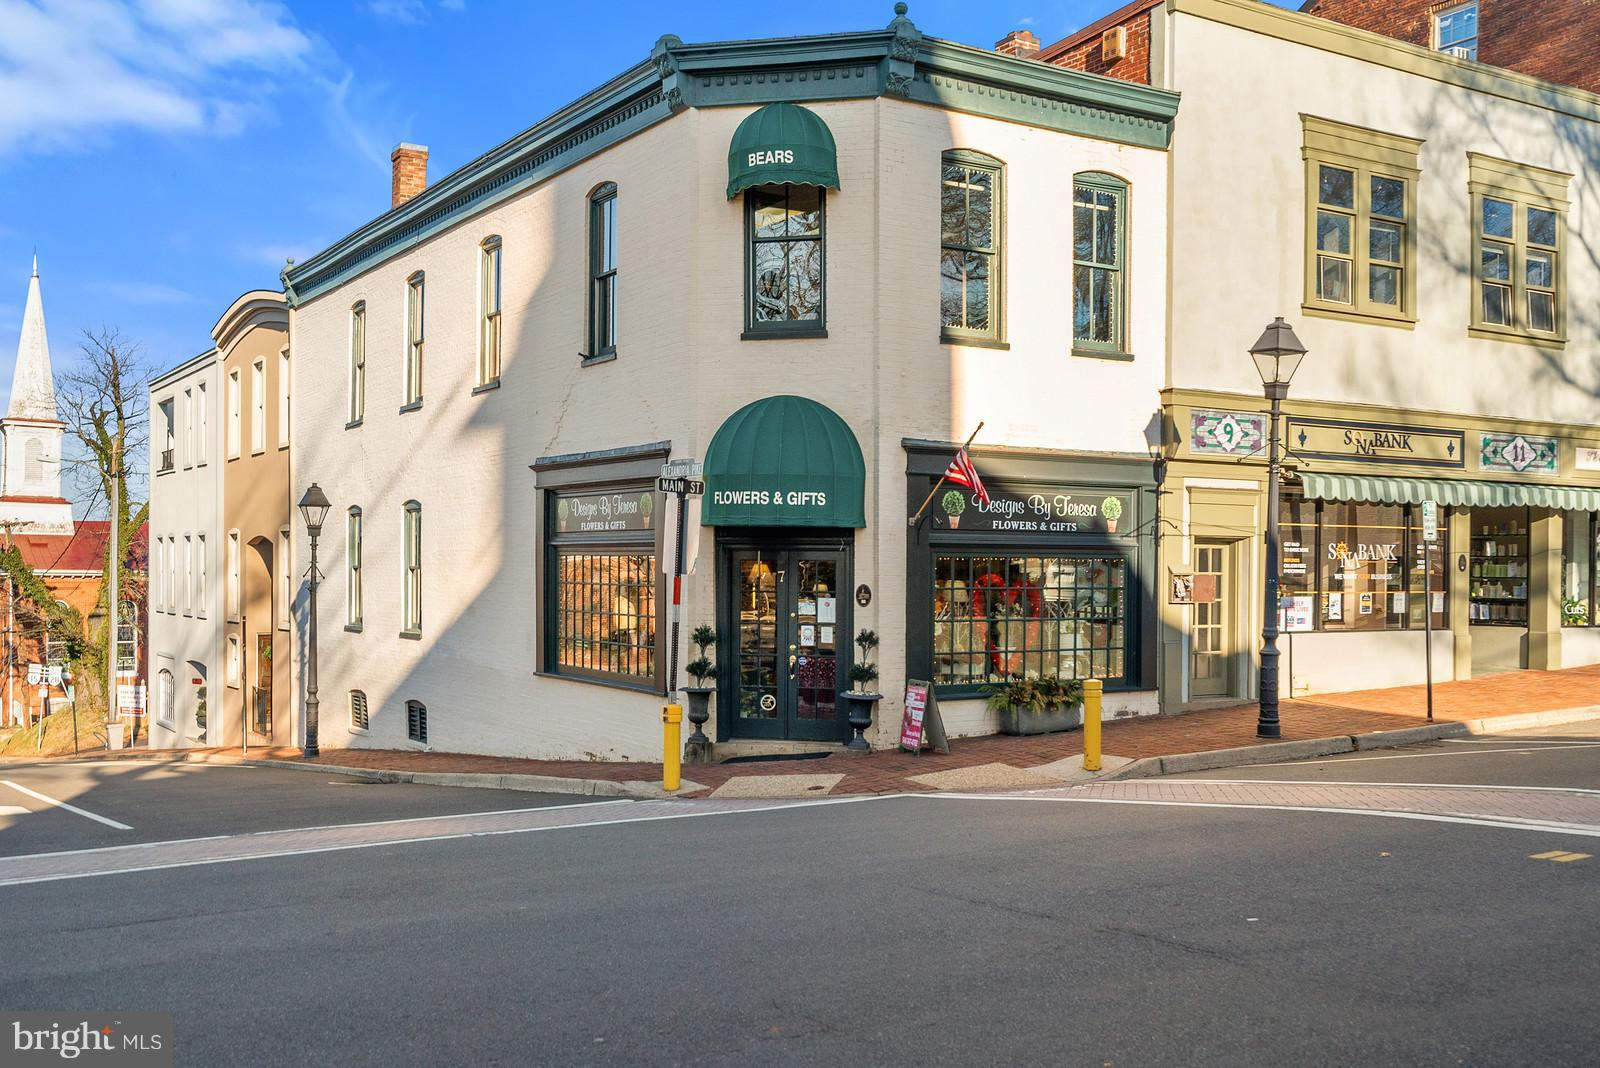 7 MAIN STREET, WARRENTON, VA 20186